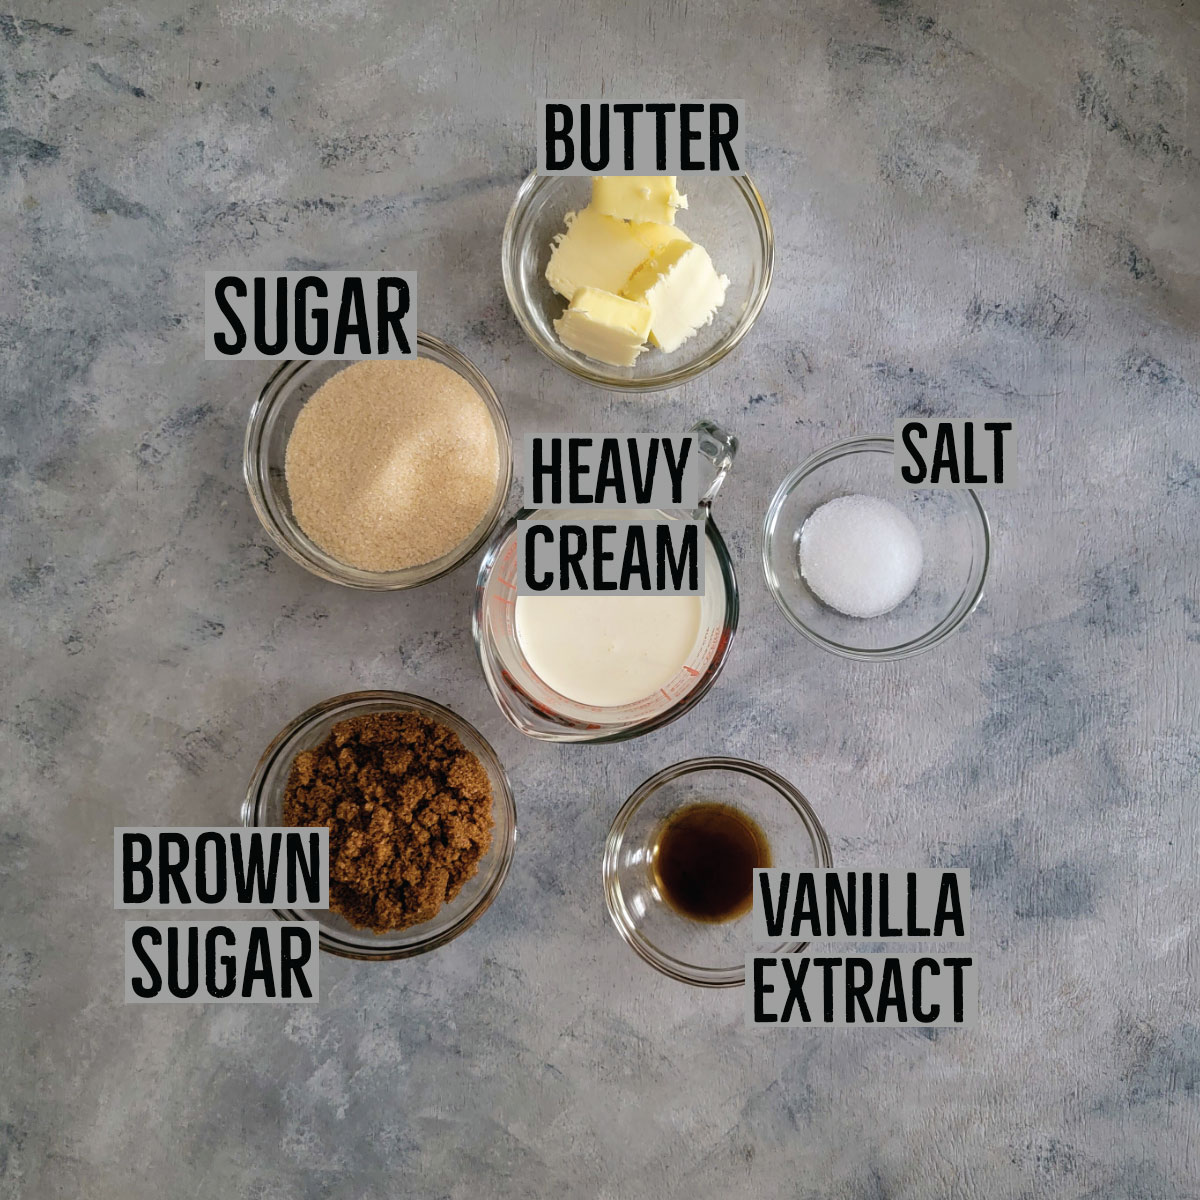 Ingredients for salted caramel in prep bowls - butter, salt, vanilla extract, brown sugar, sugar and heavy cream.